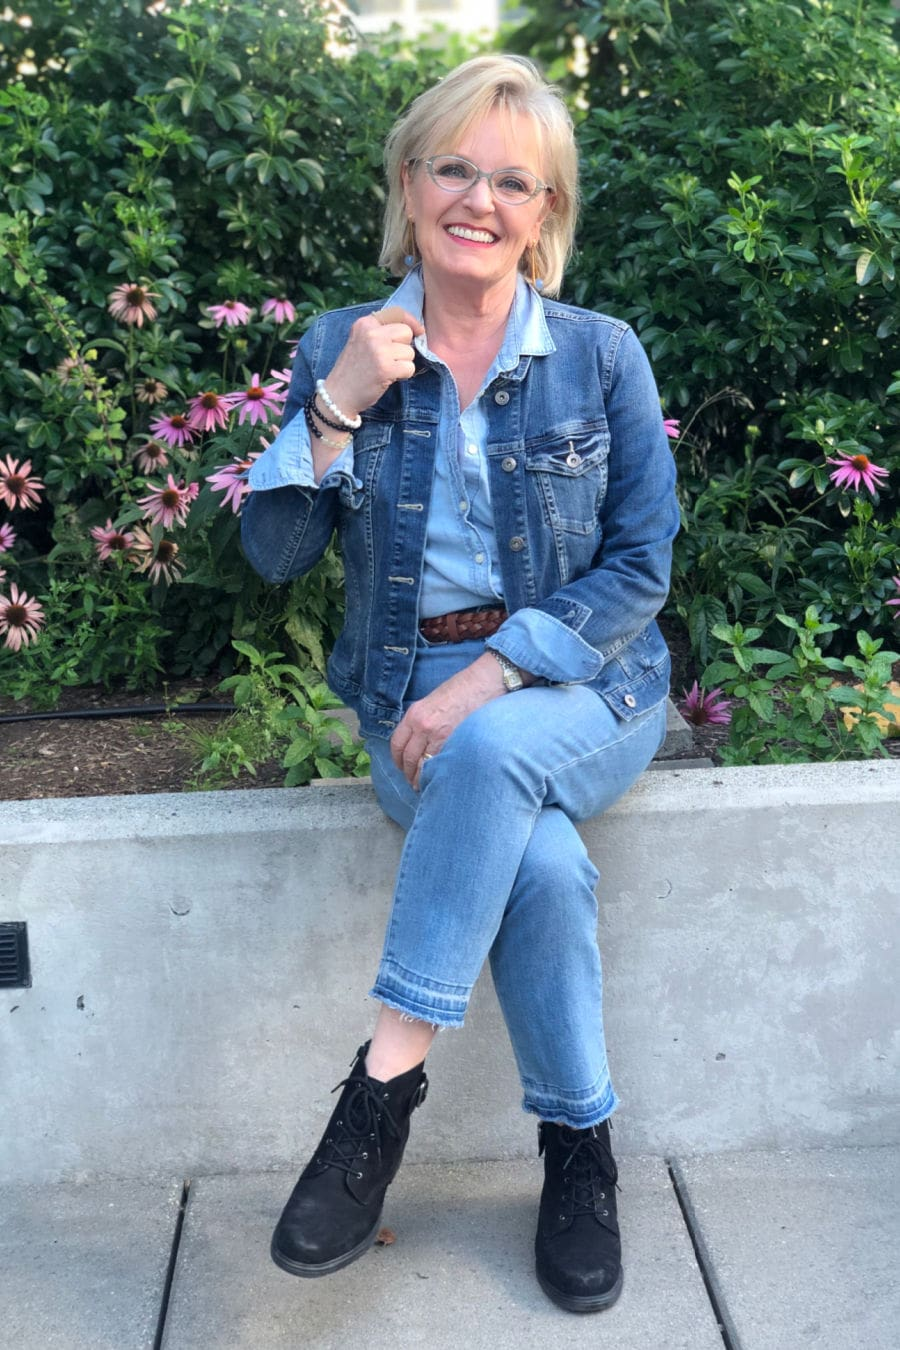 over 50 fashion blogger A Well Styled Life wearing casual double denim outfit